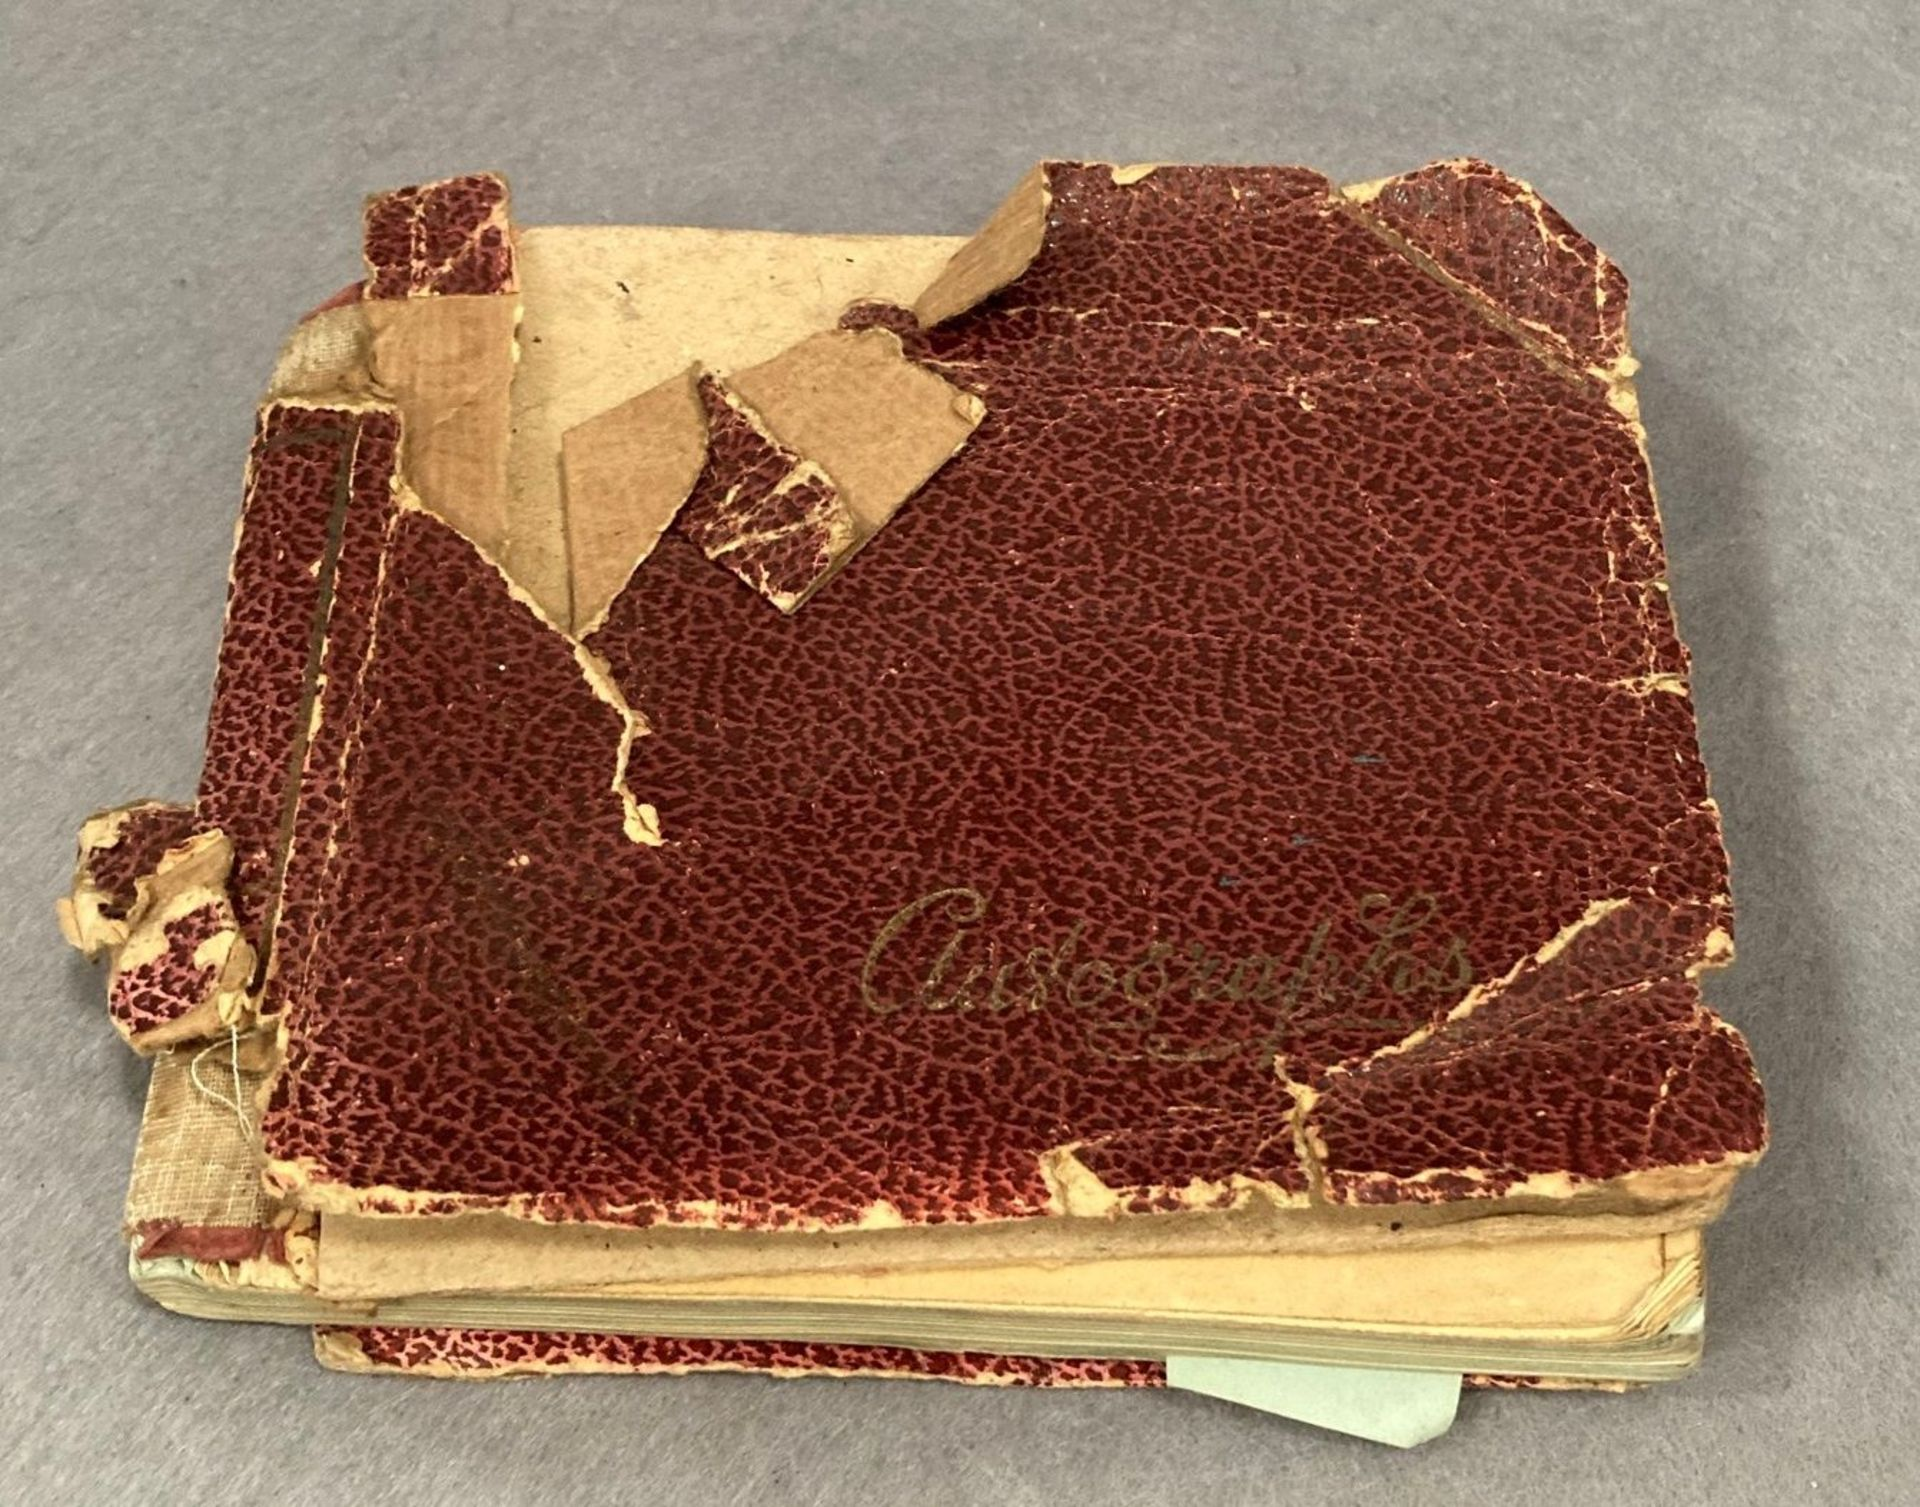 An autograph book, badly distressed, - Image 5 of 5